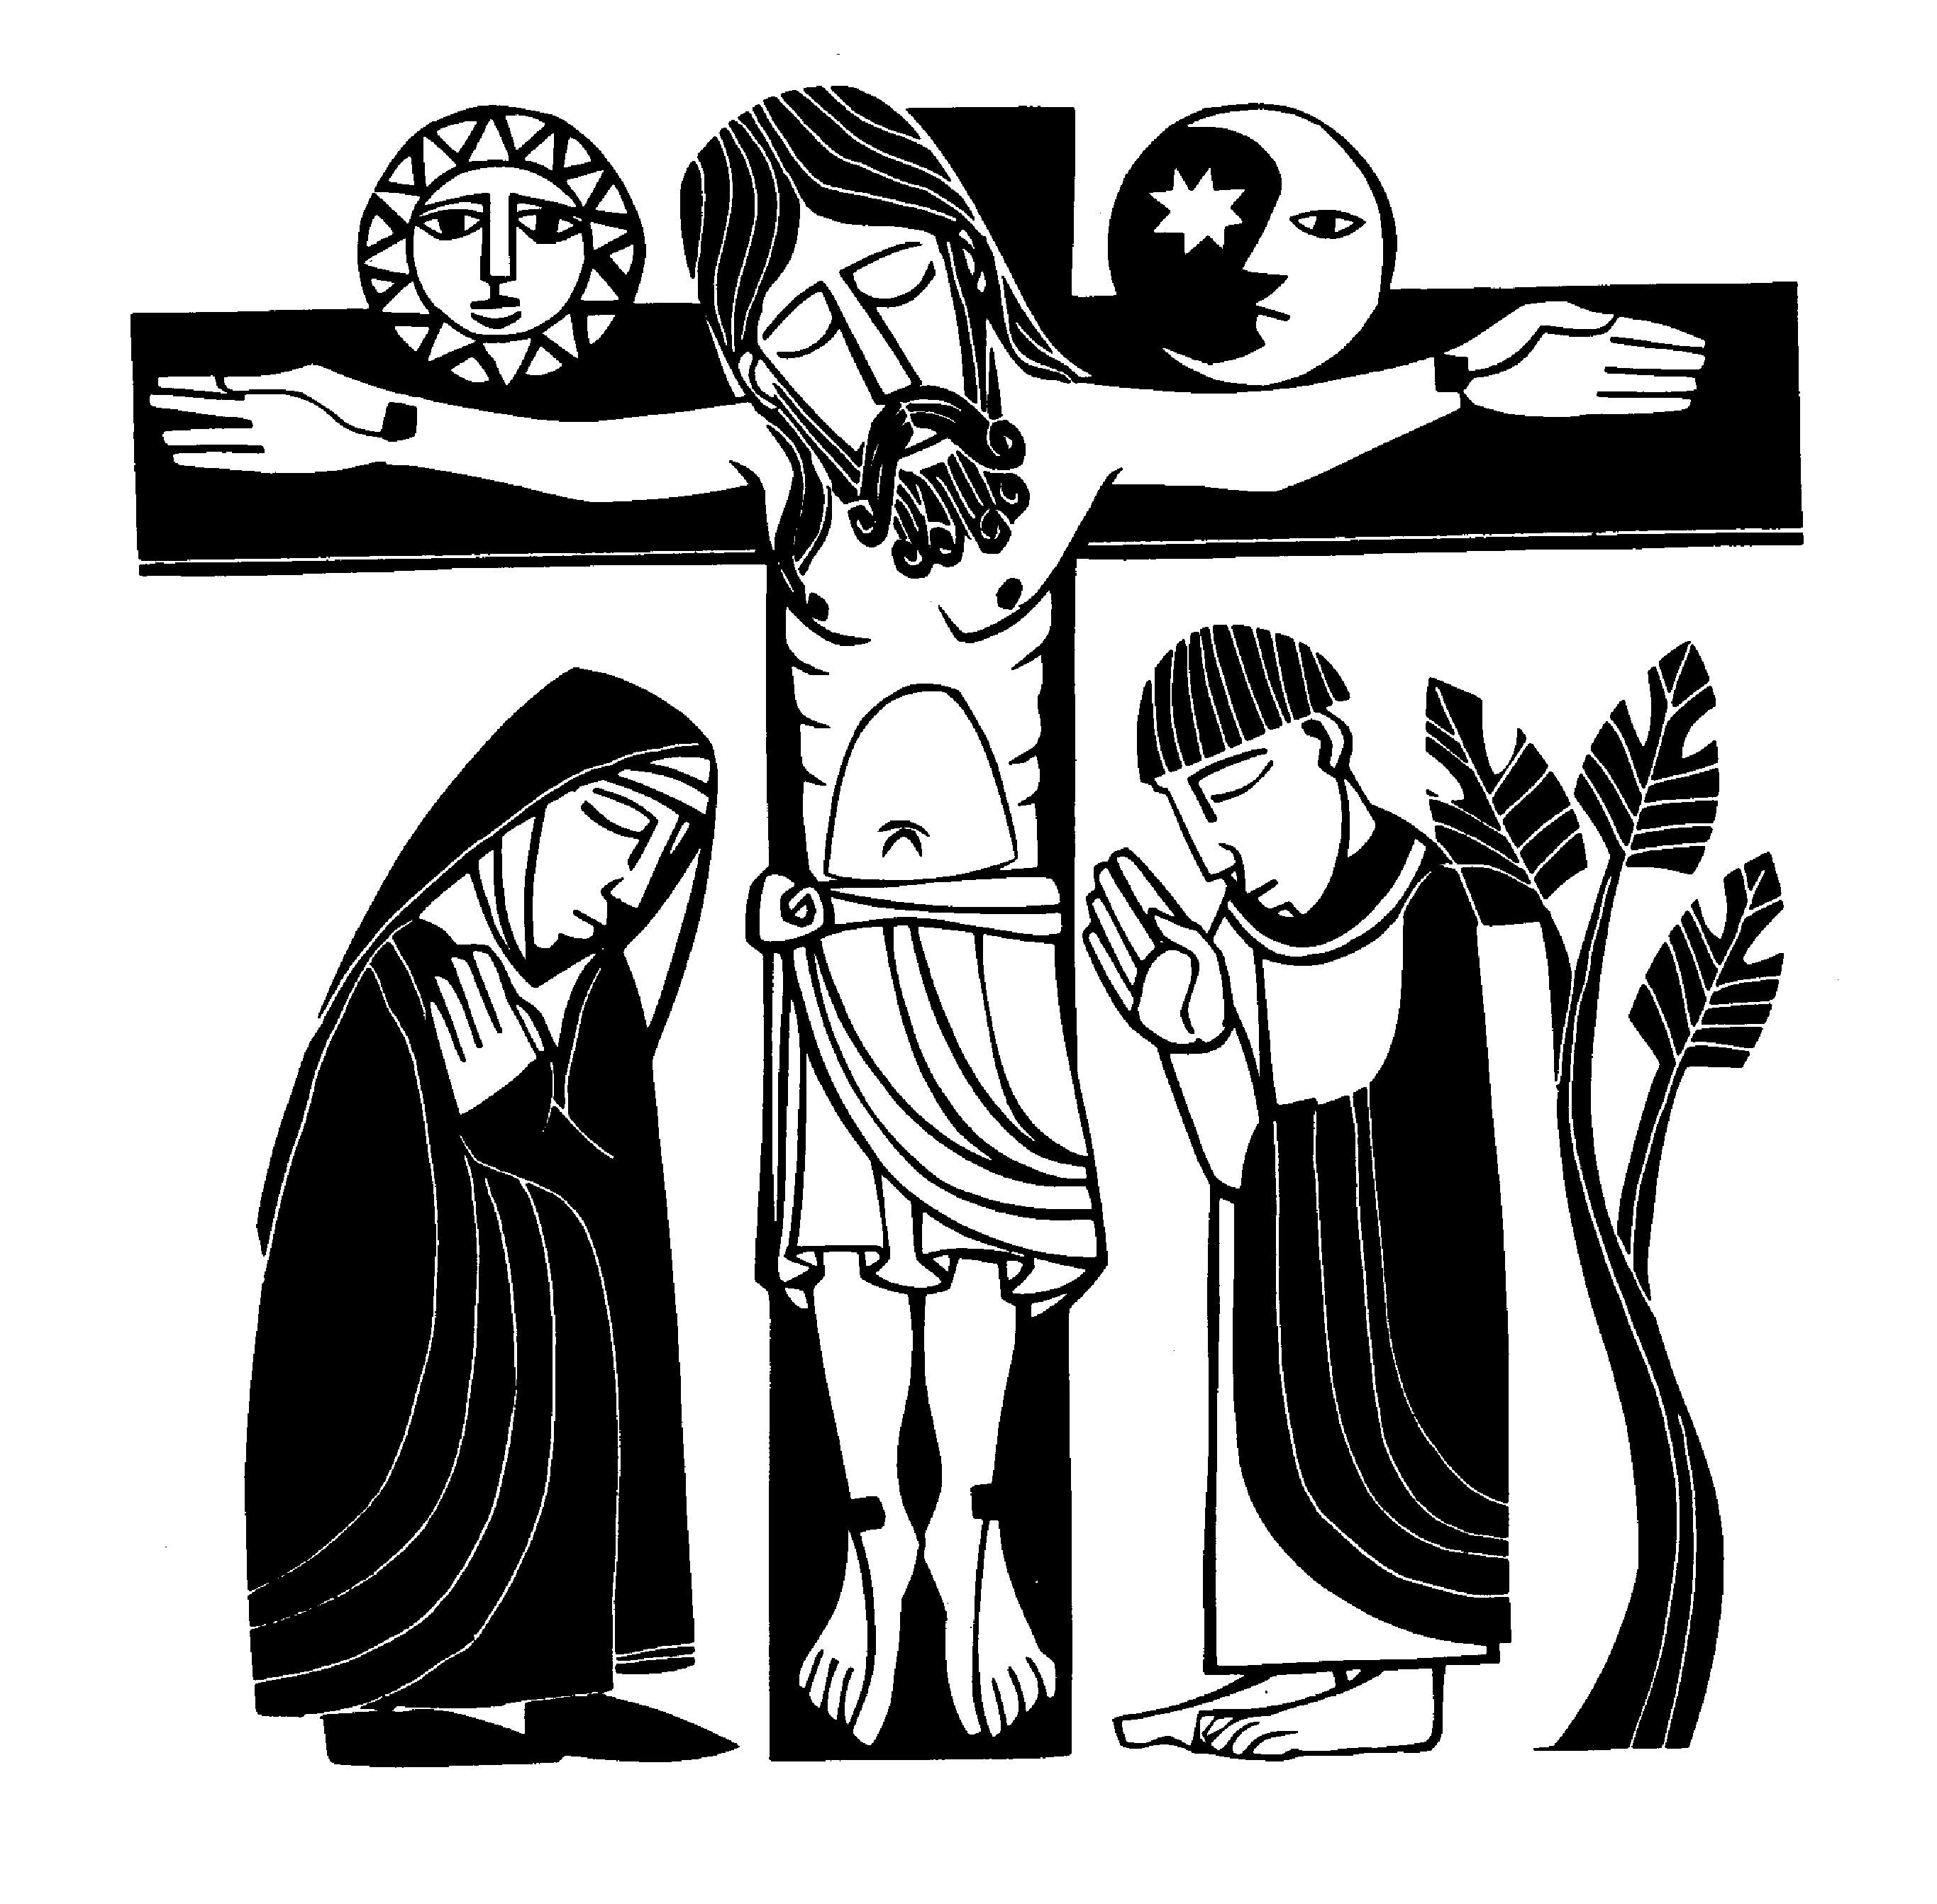 stations of the cross clipart stations of the cross clip art clipart best clipart cross the of stations